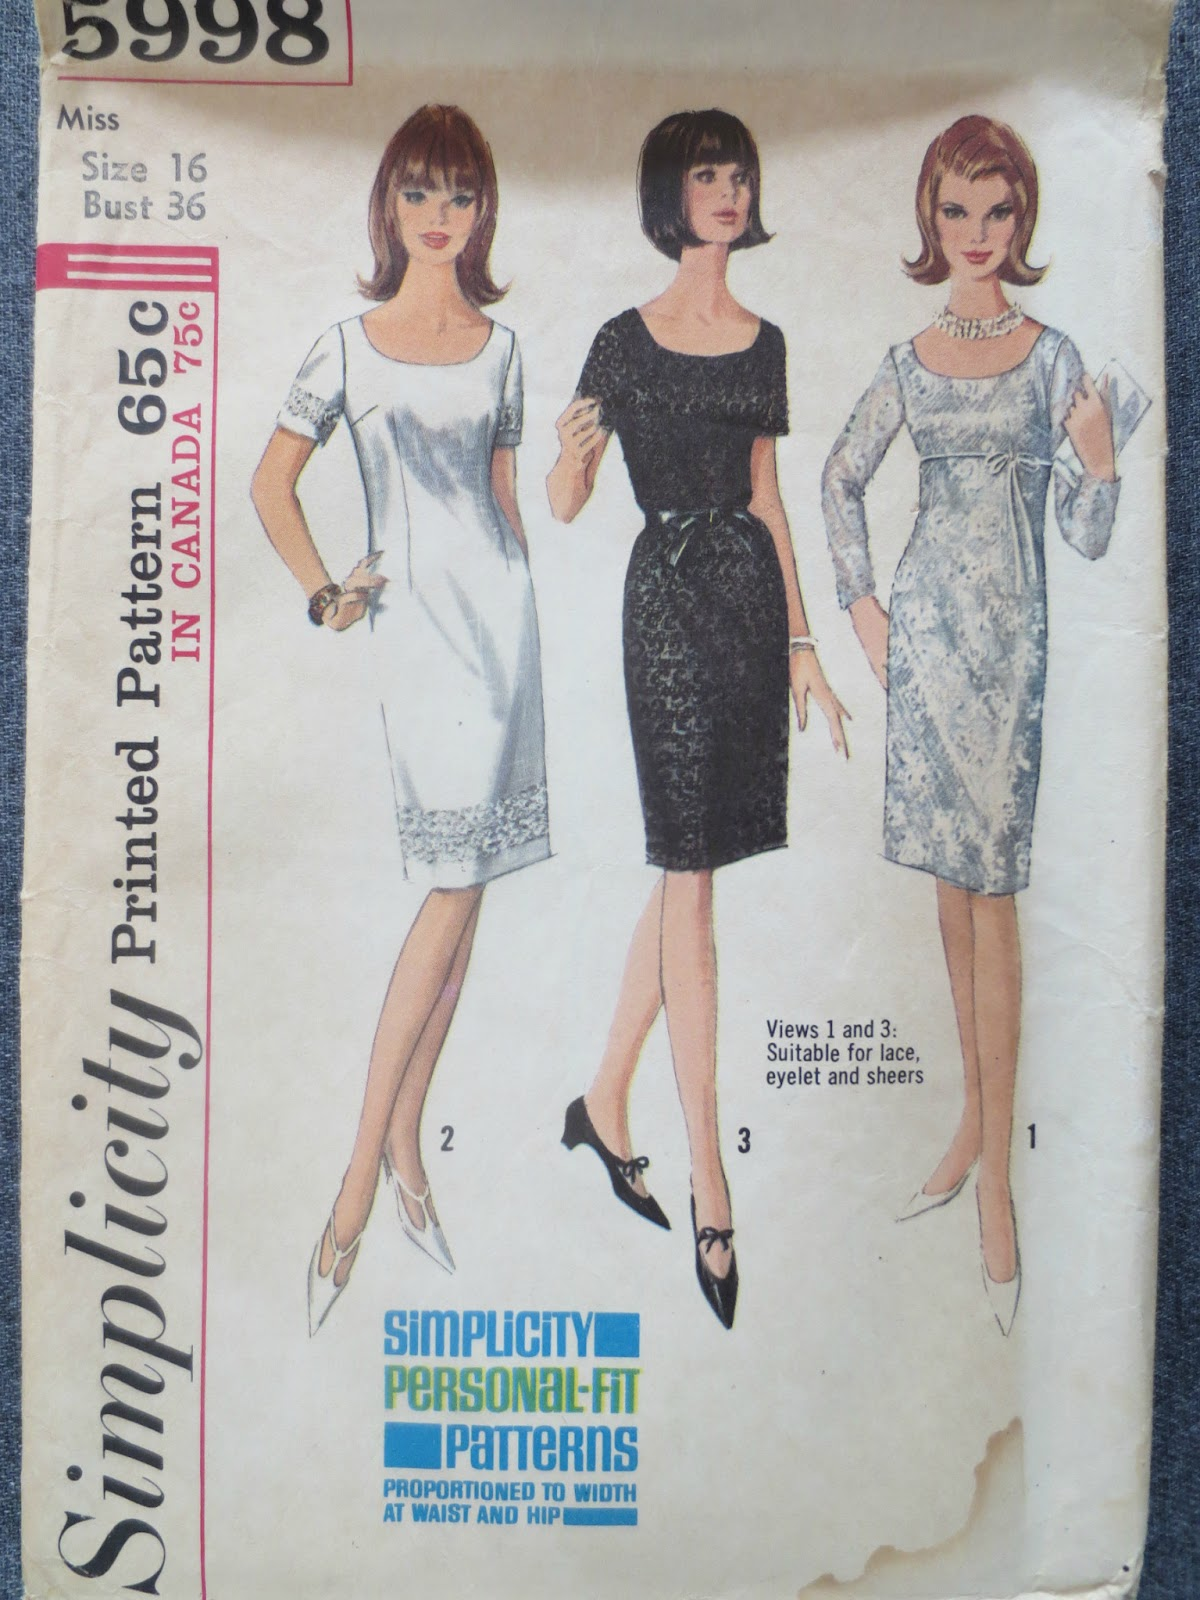 Simplicity 5998 via Brentwood Lane